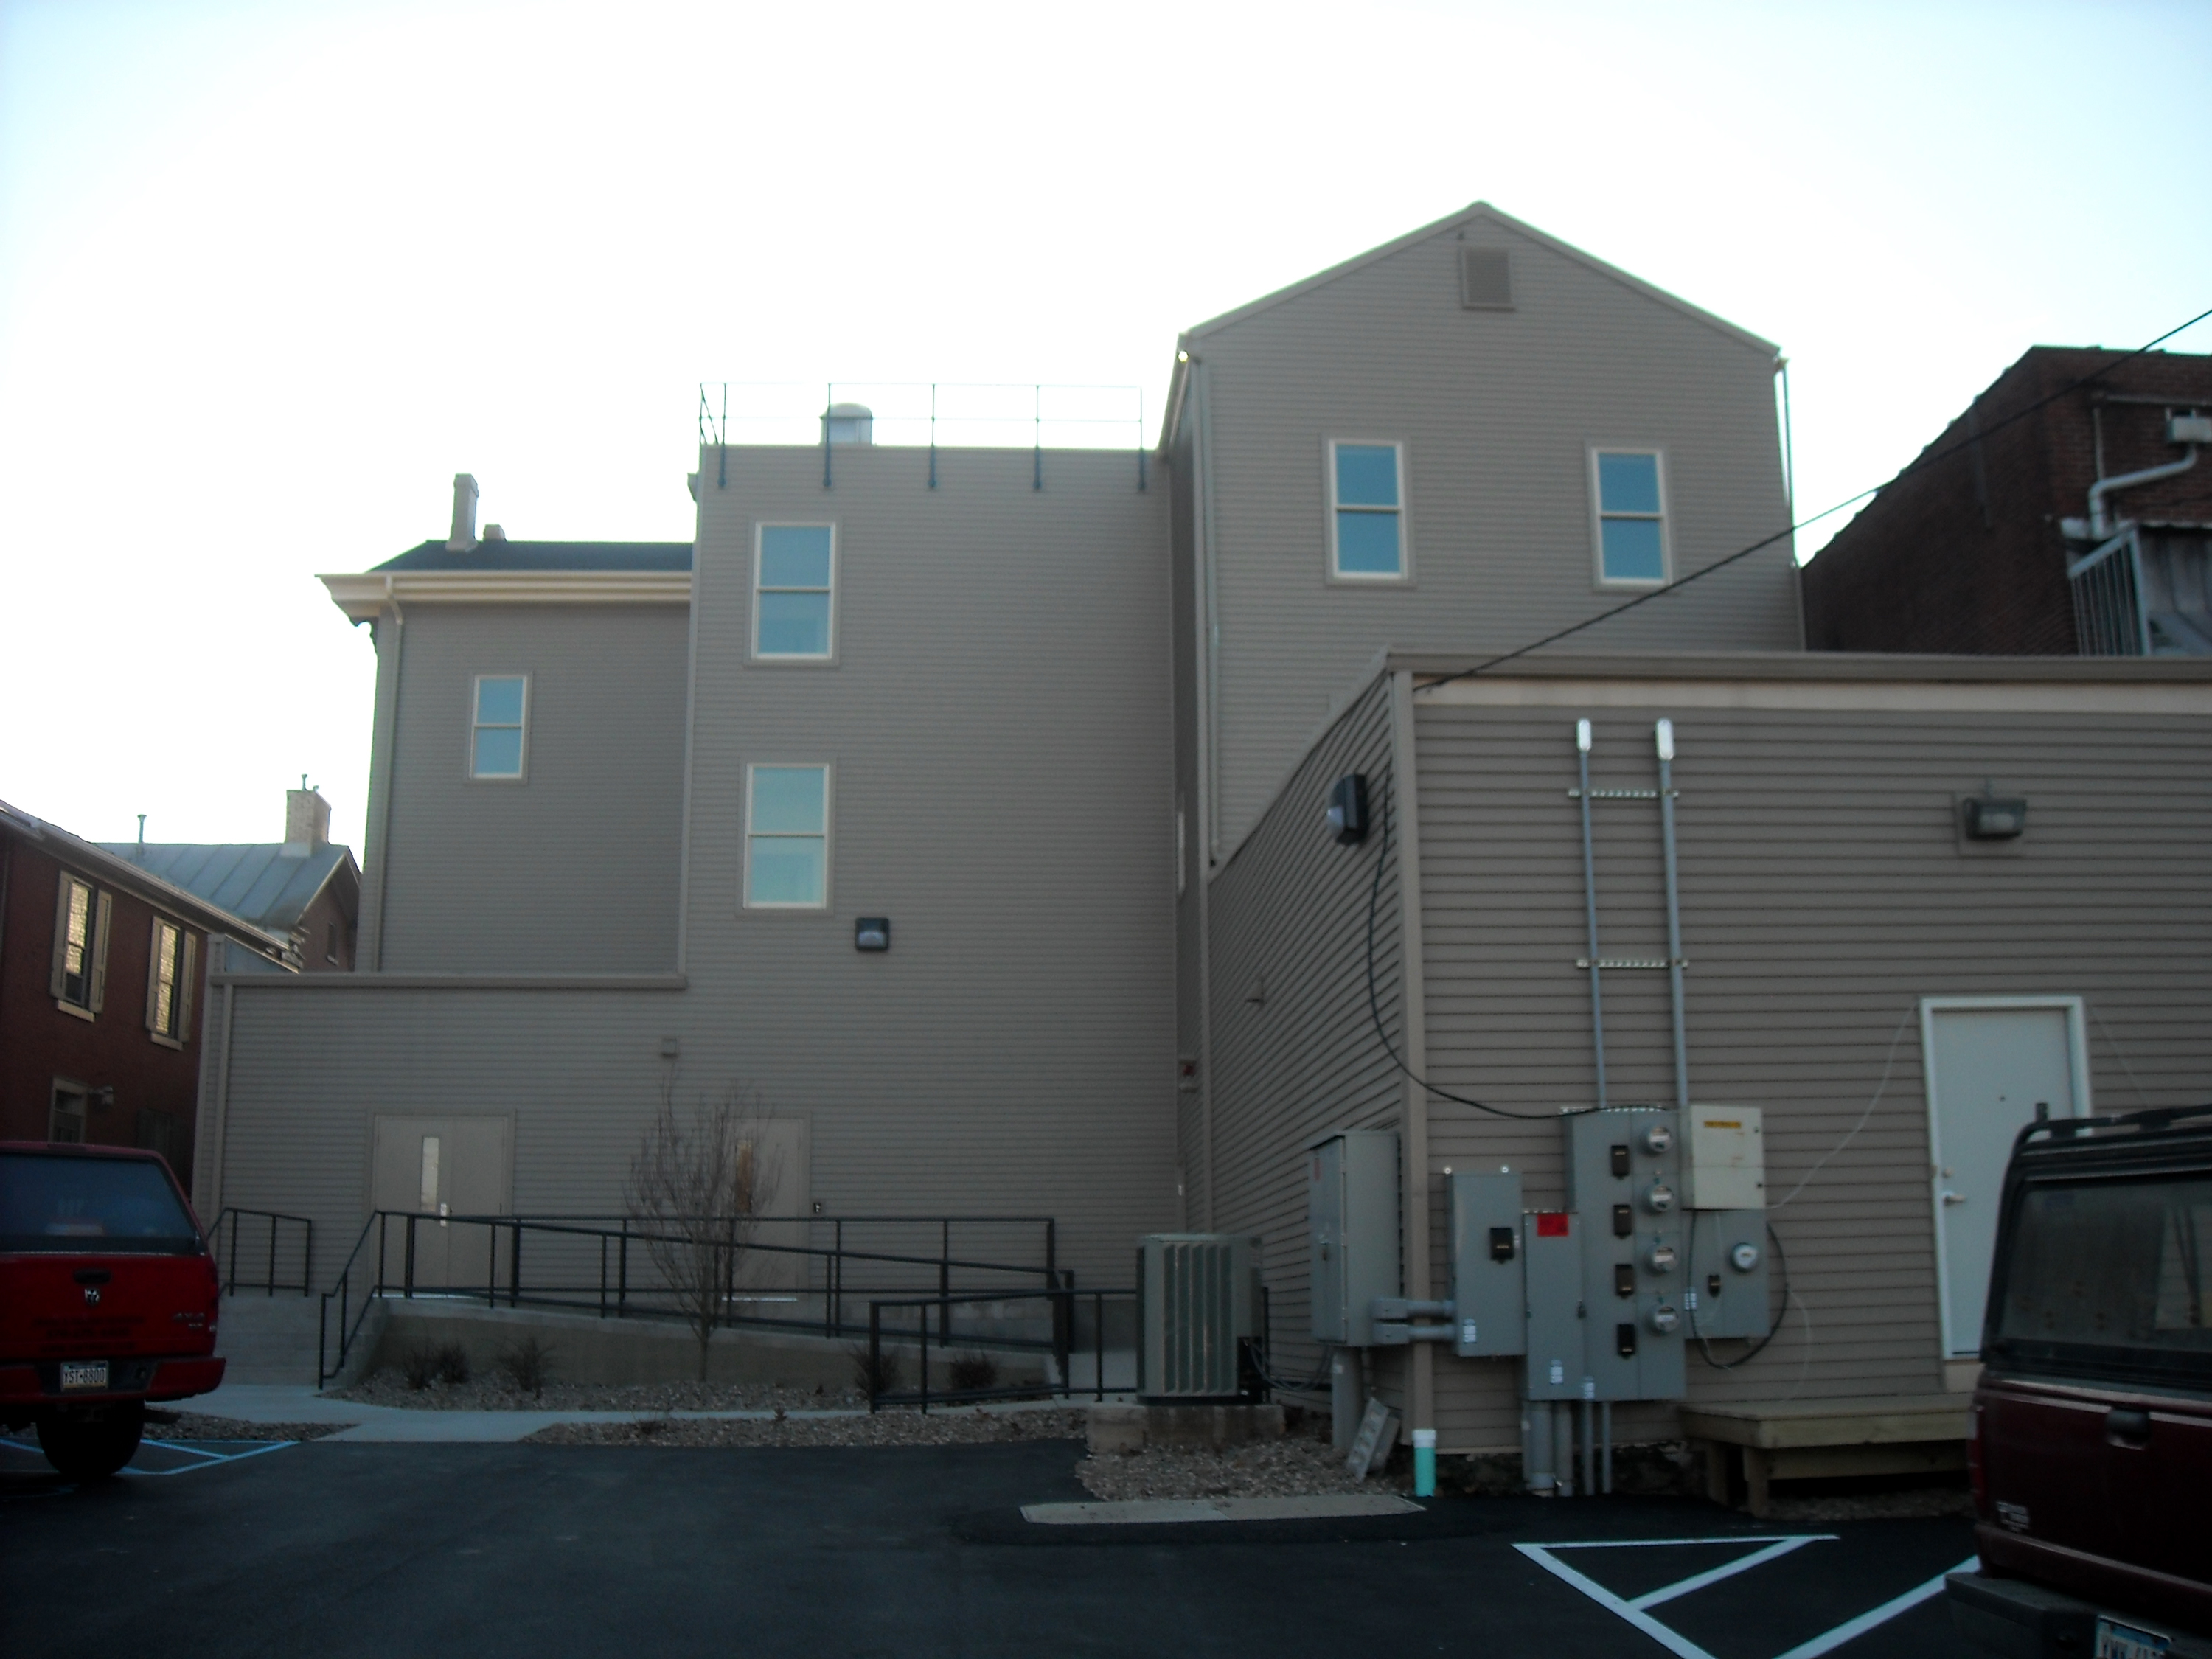 The back of the DeWitt Building at Bucknell University after renovations.